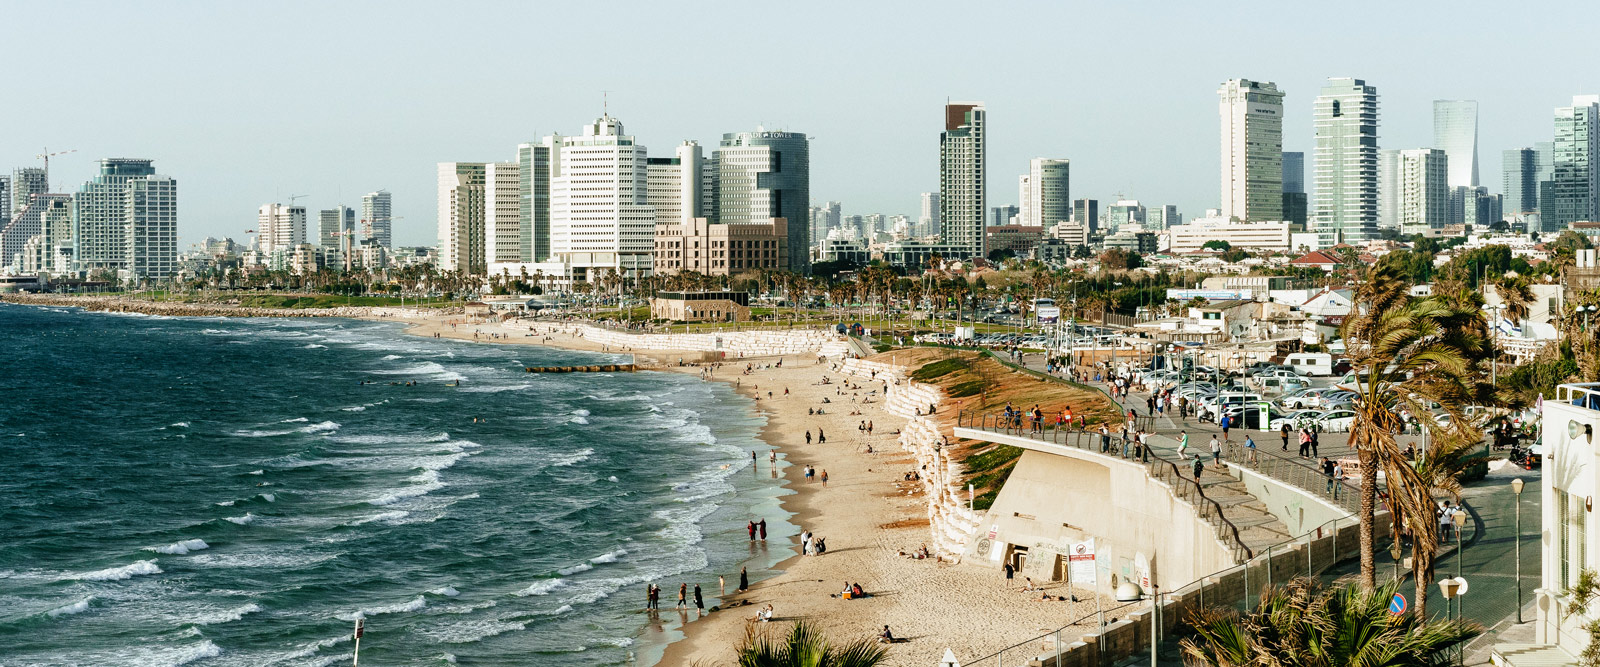 The shoreline in Israel